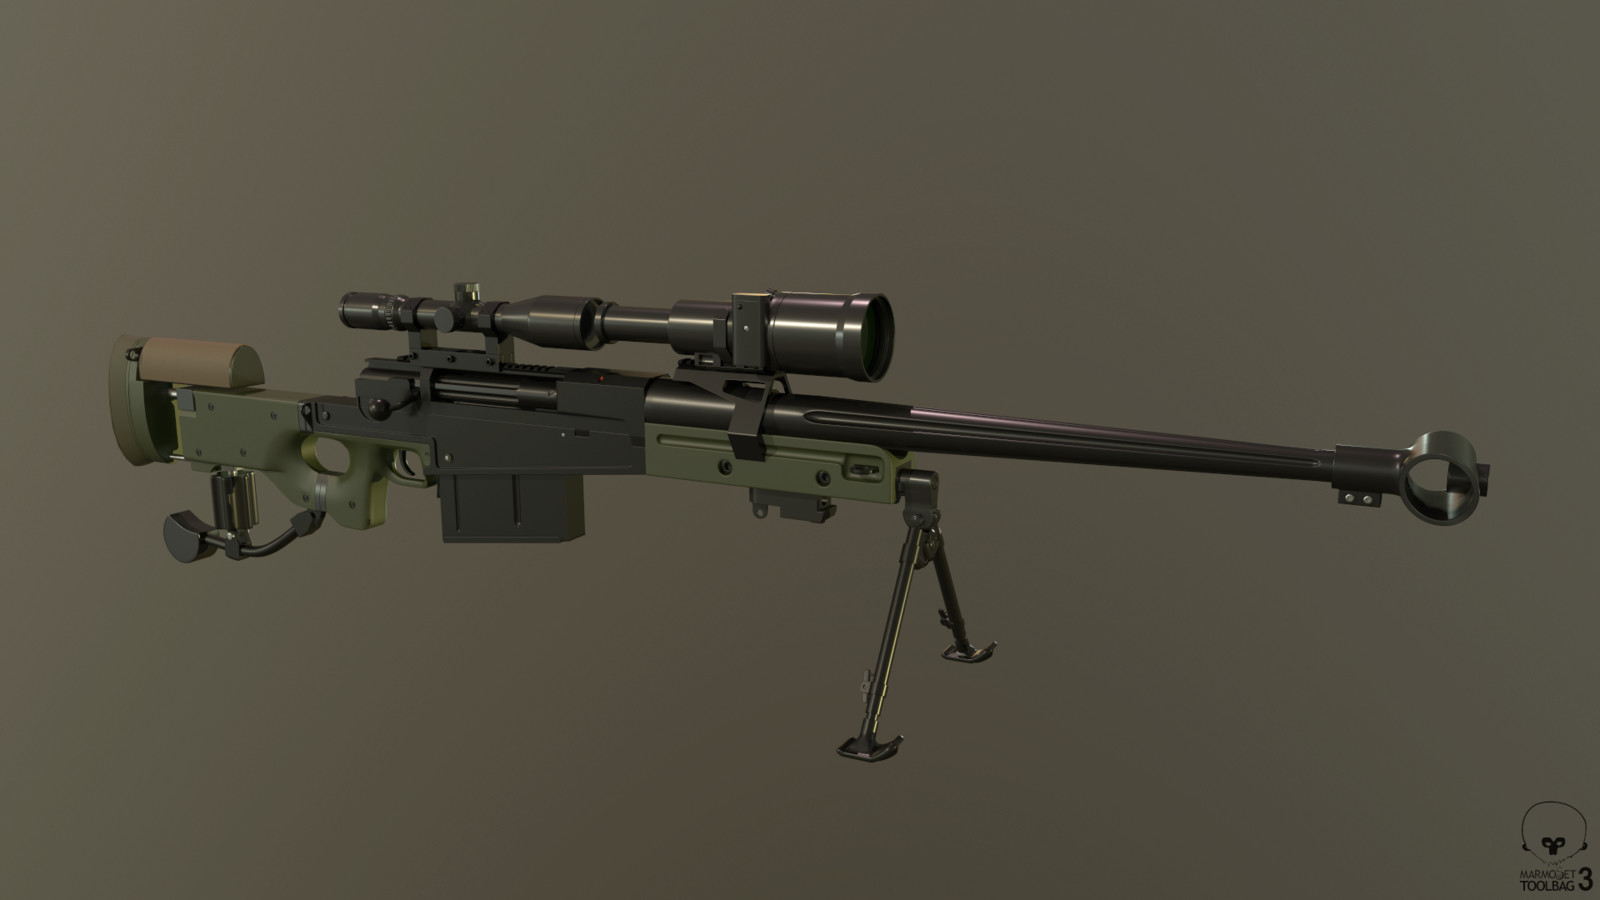 AM 50 / L121A1 with Schmidt & Bender 3-12x50 PM II Scope, front mount with Hensoldt NV80 night vision scope.  High Poly - Left Side.